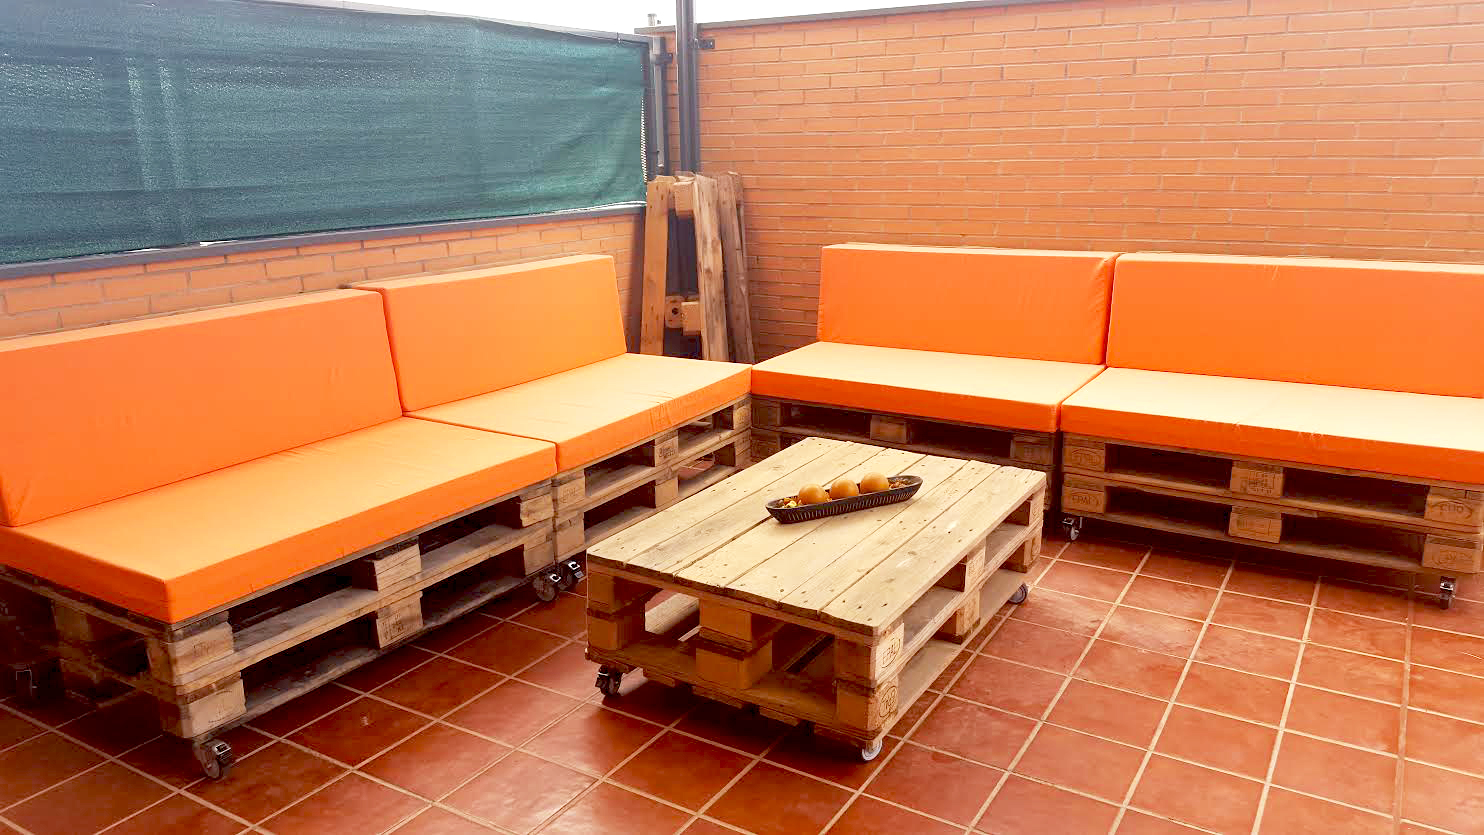 espacio chill out hogar - Chill Out Con Palets